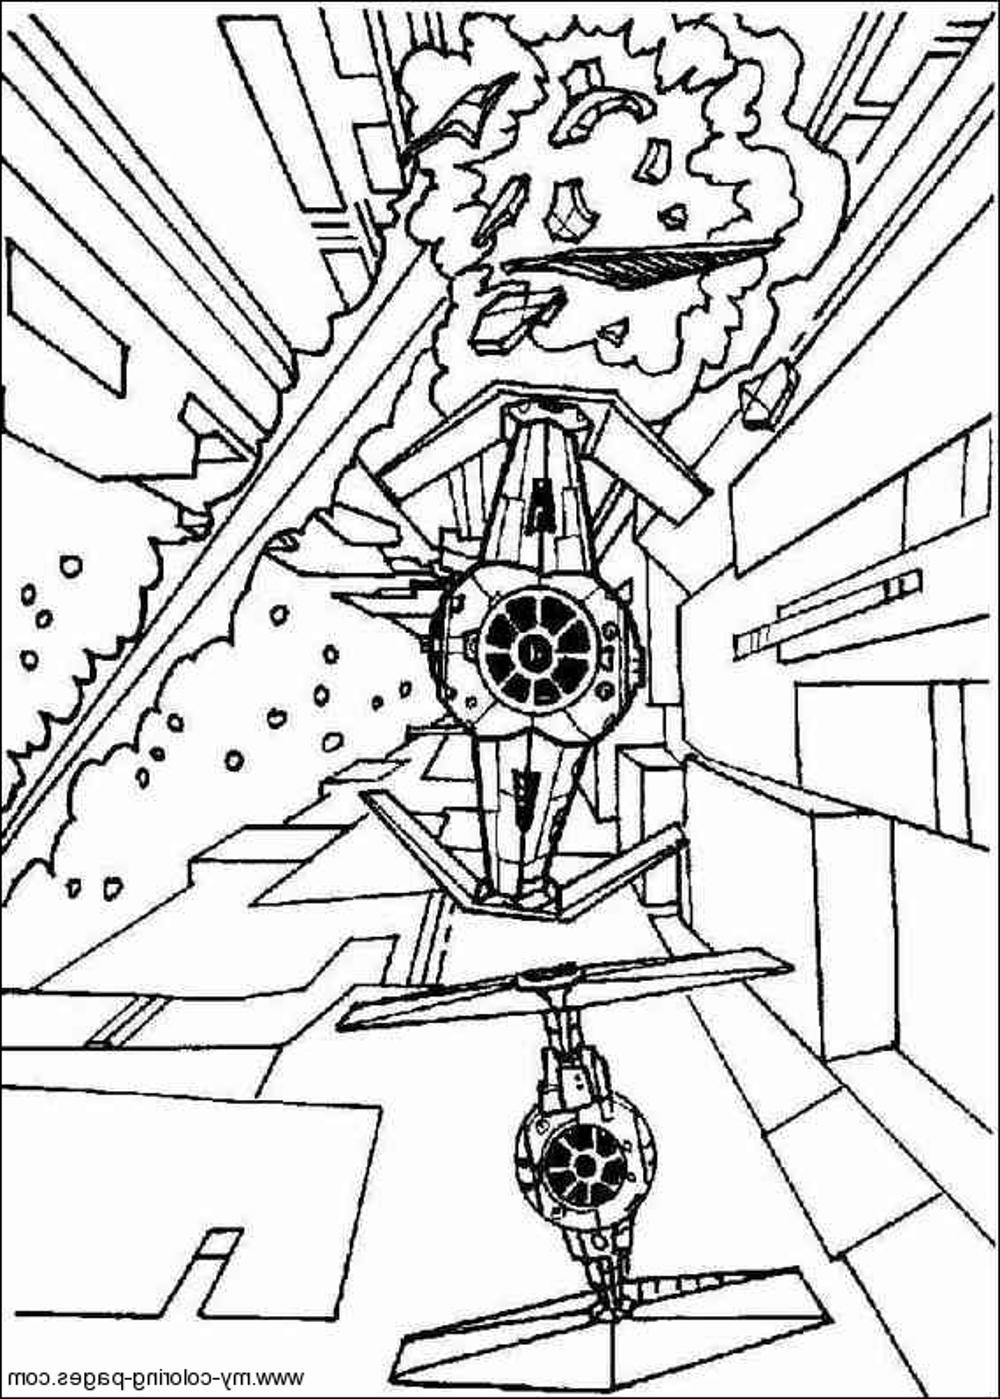 coloring lego star wars lego star wars coloring pages to download and print for free wars lego coloring star